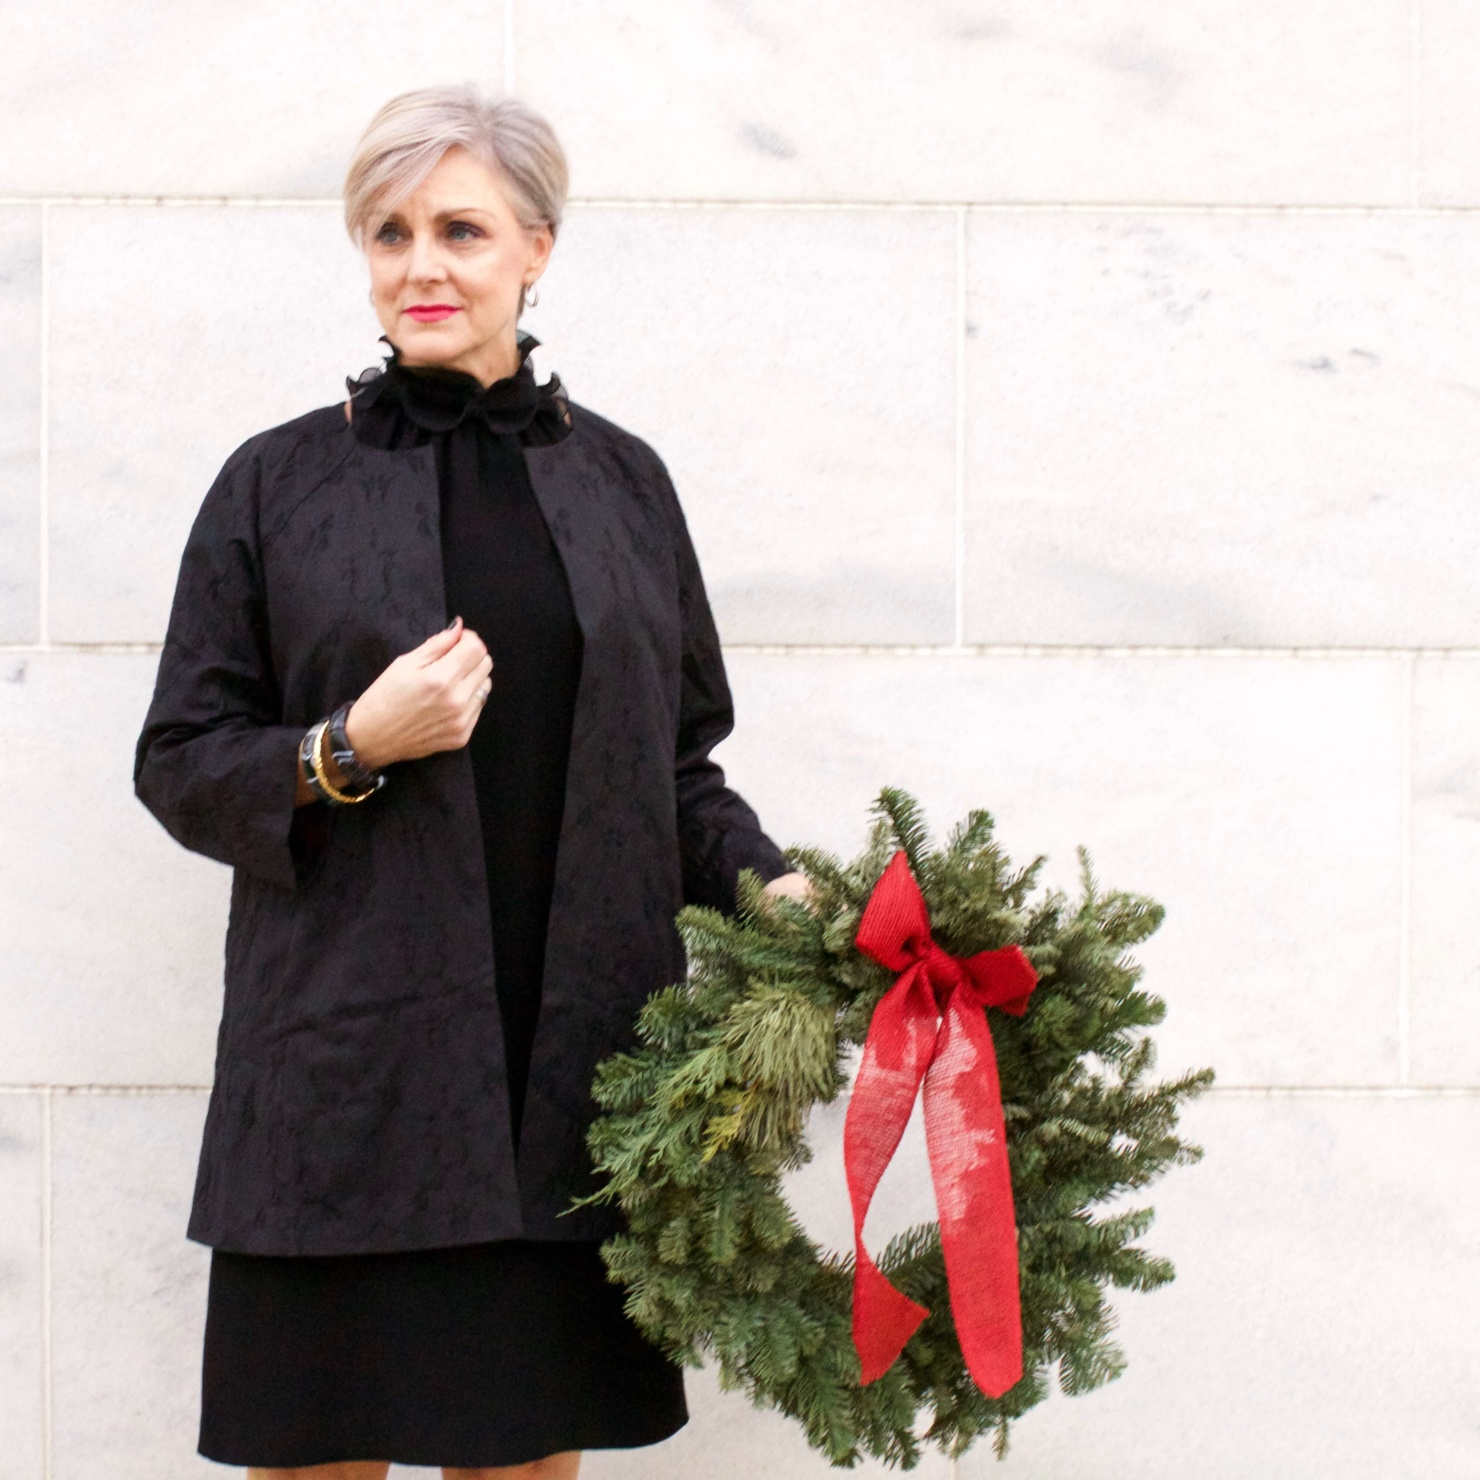 beth from Style at a Certain Age wears a Eileen Fisher shimmer jacquard 3/4 sleeve jacket and ruffled black dress